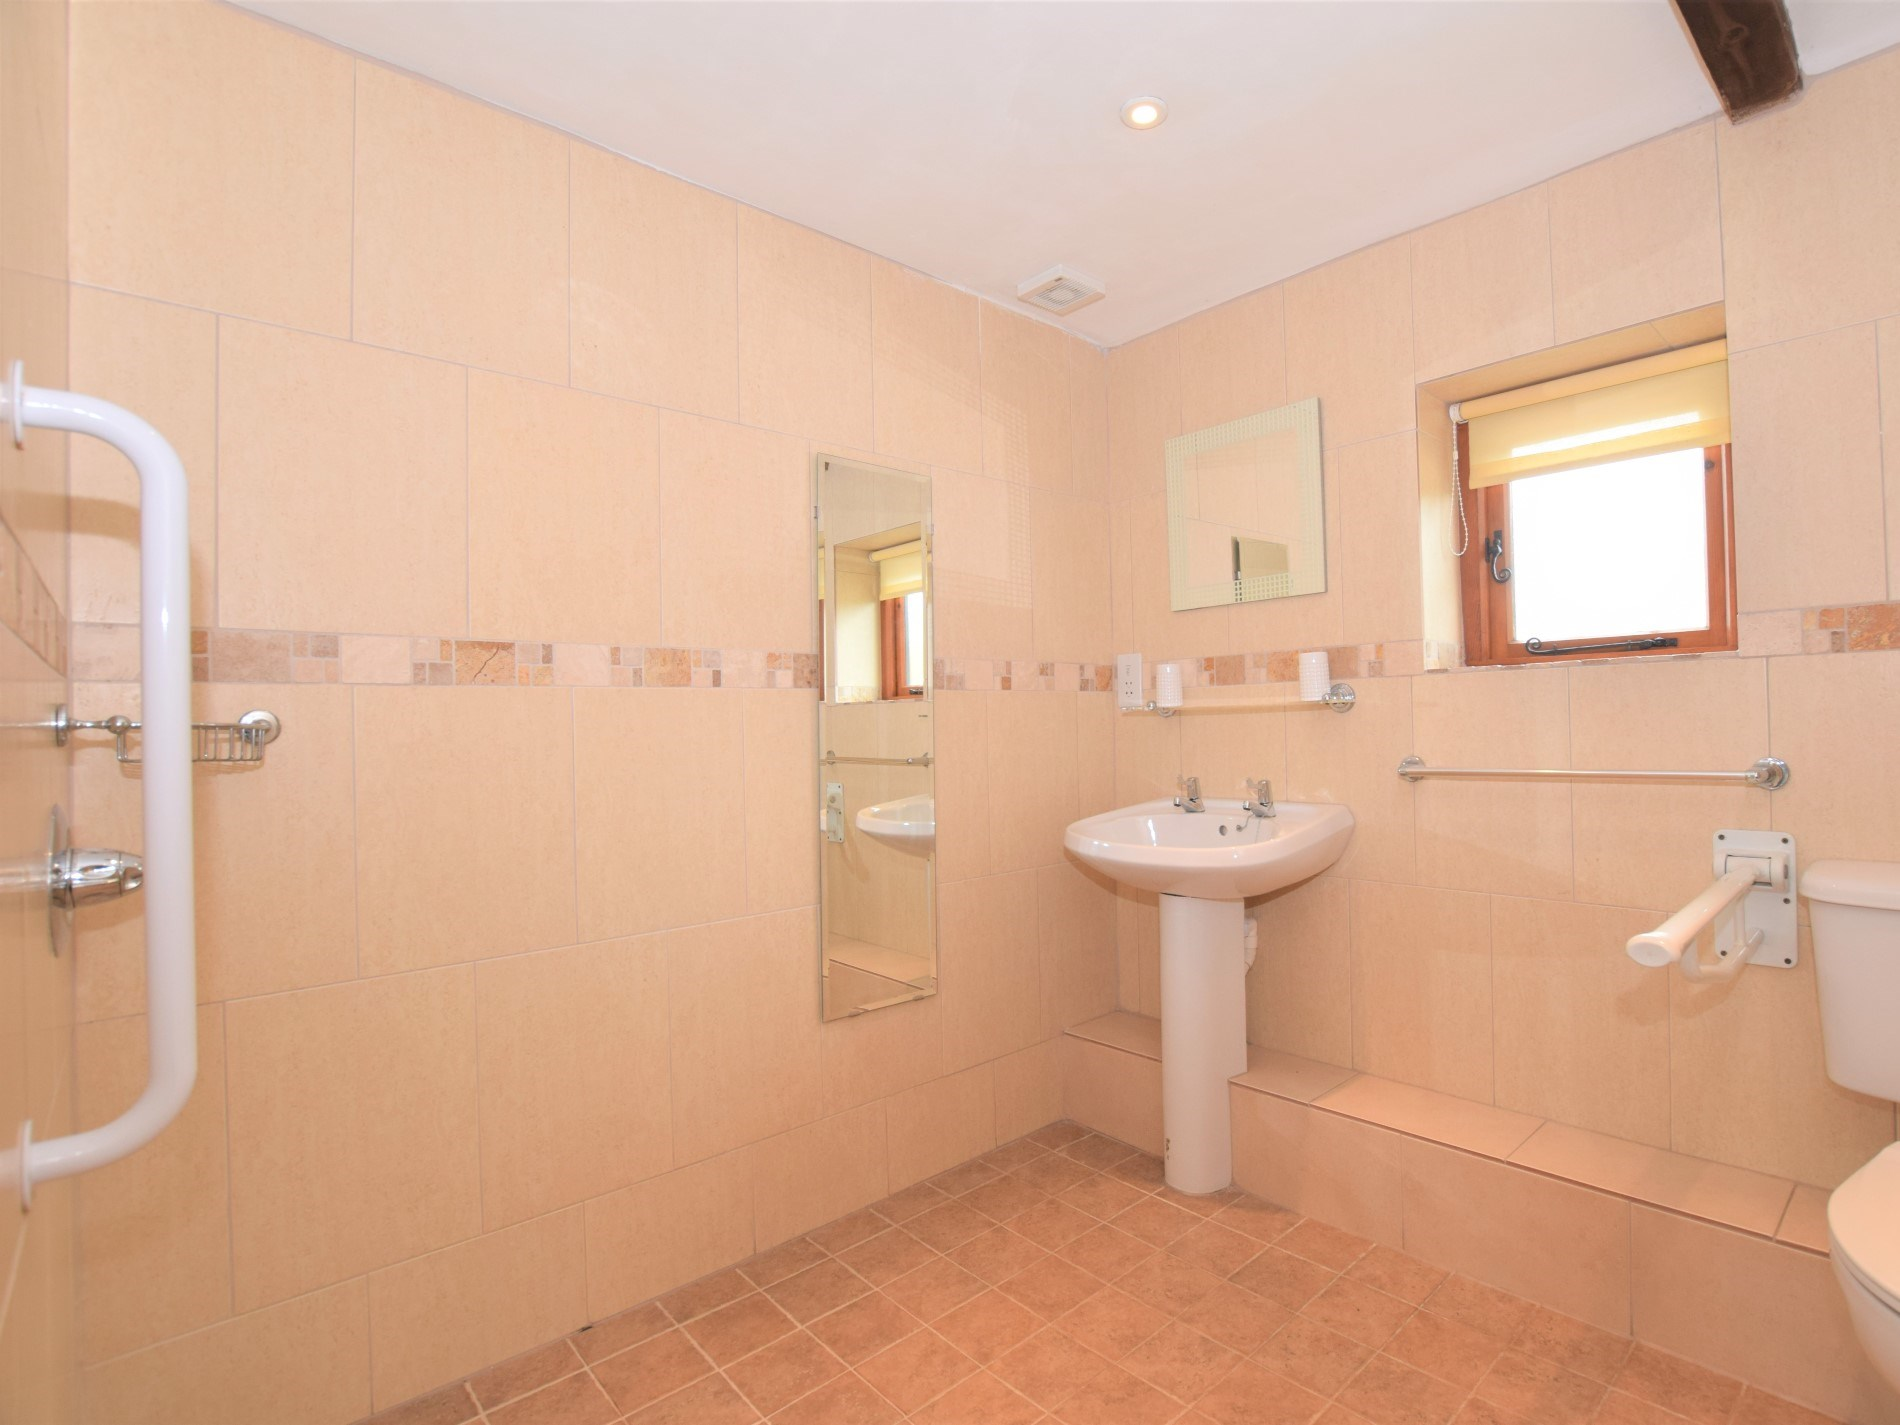 1 Bedroom Cottage in Tiverton, Devon